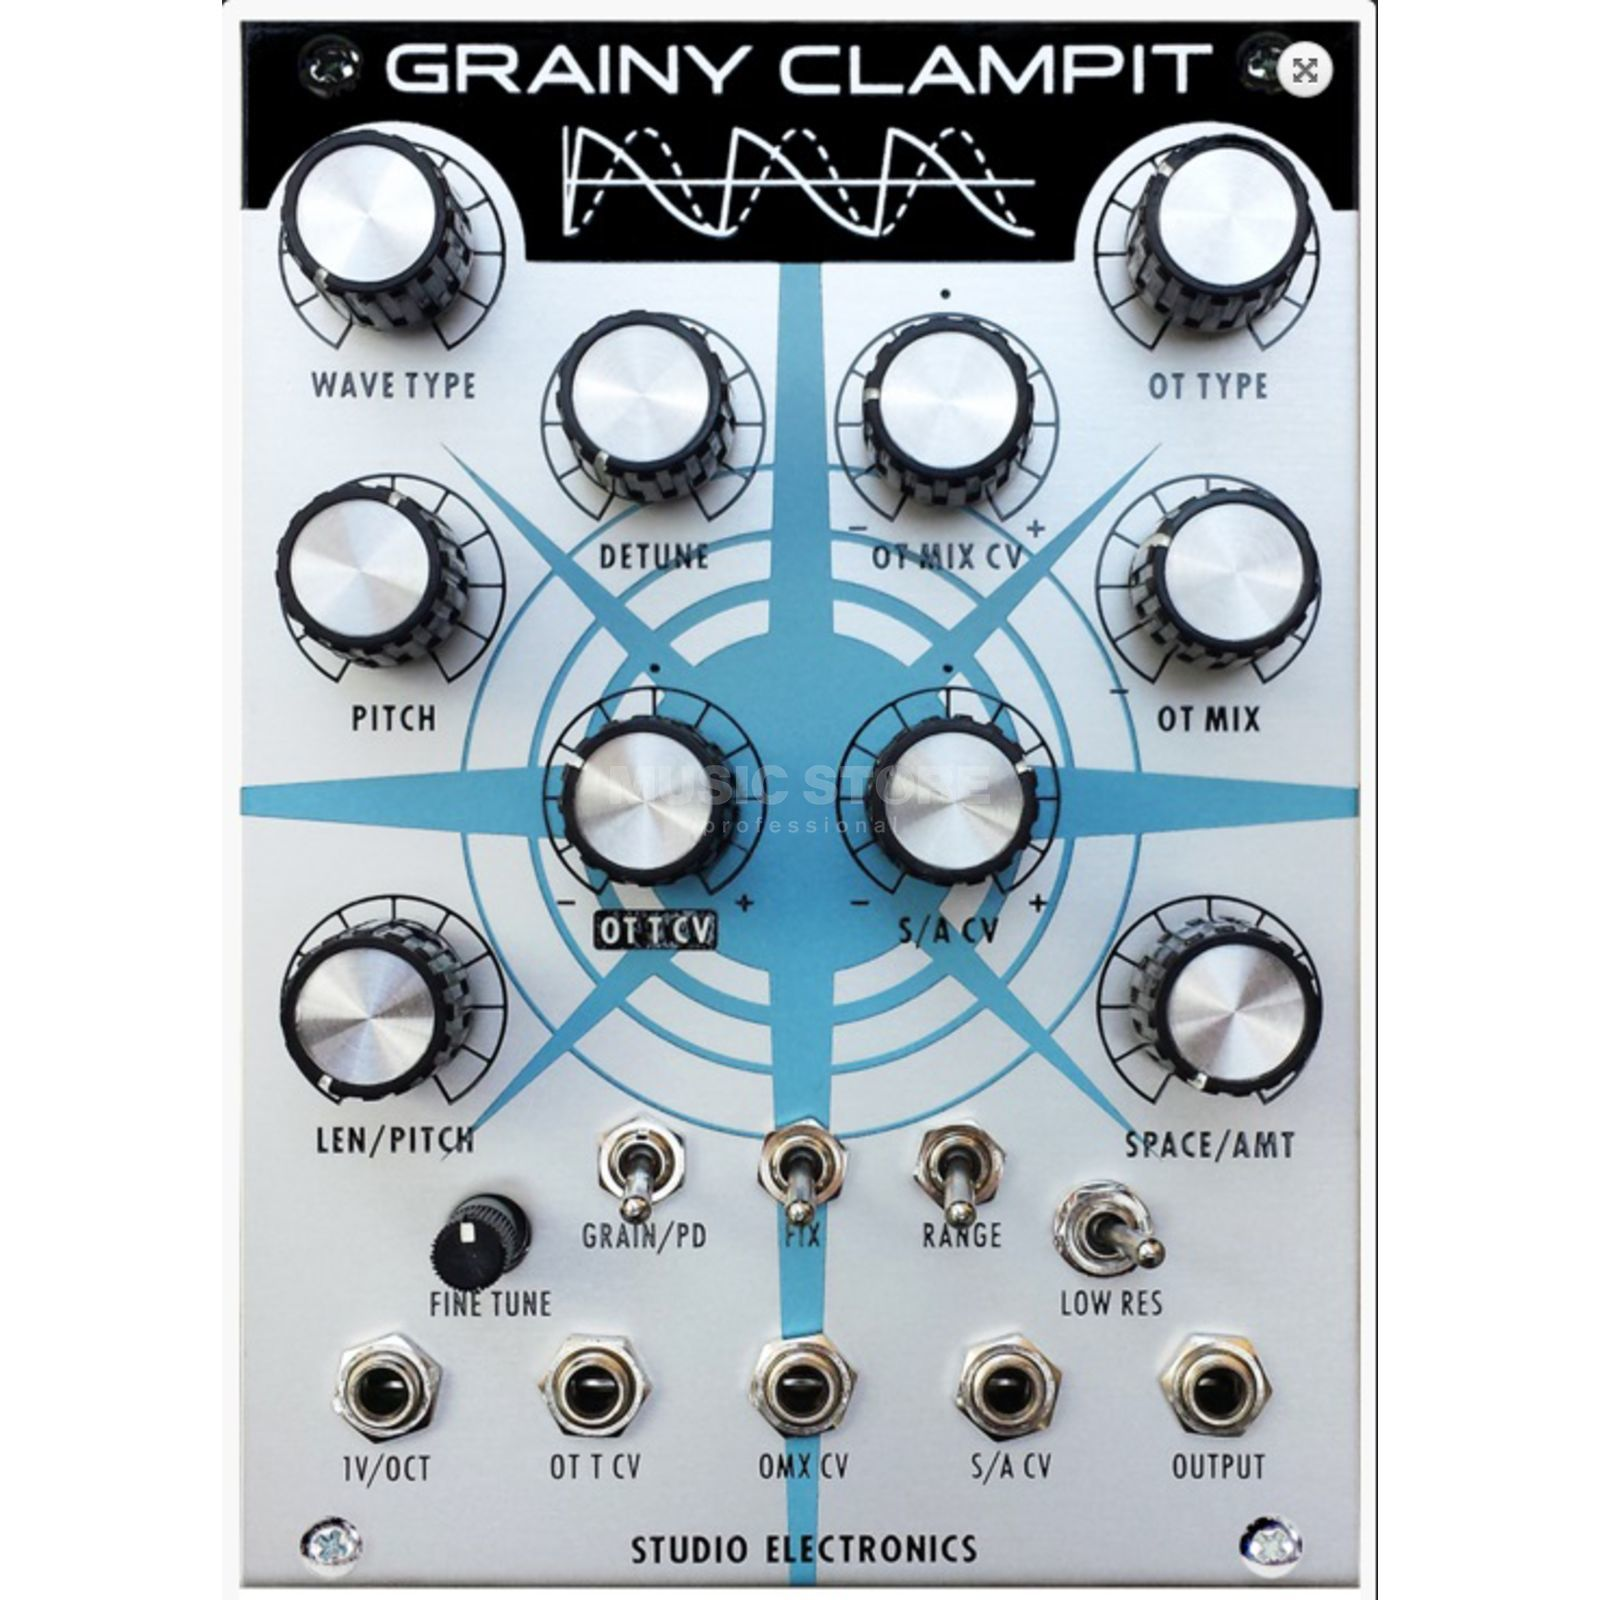 Studio Electronics Grainy Clamp it Oscillator Graincloud Produktbillede